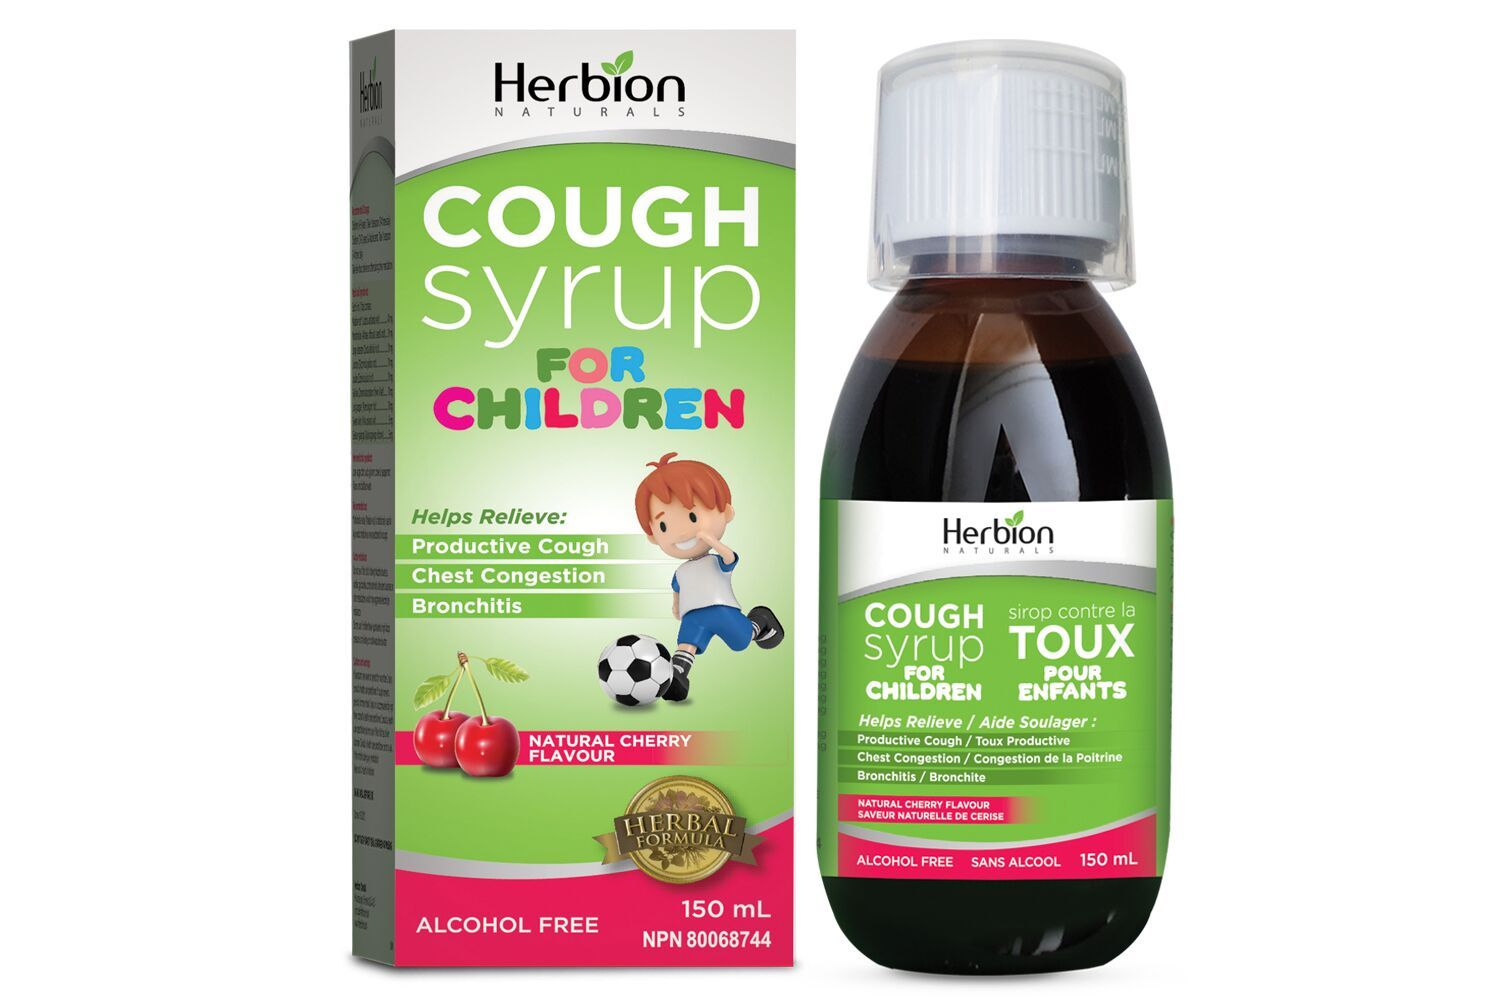 Baby & Kids - Herbion - Cough Syrup For Children, 150ml